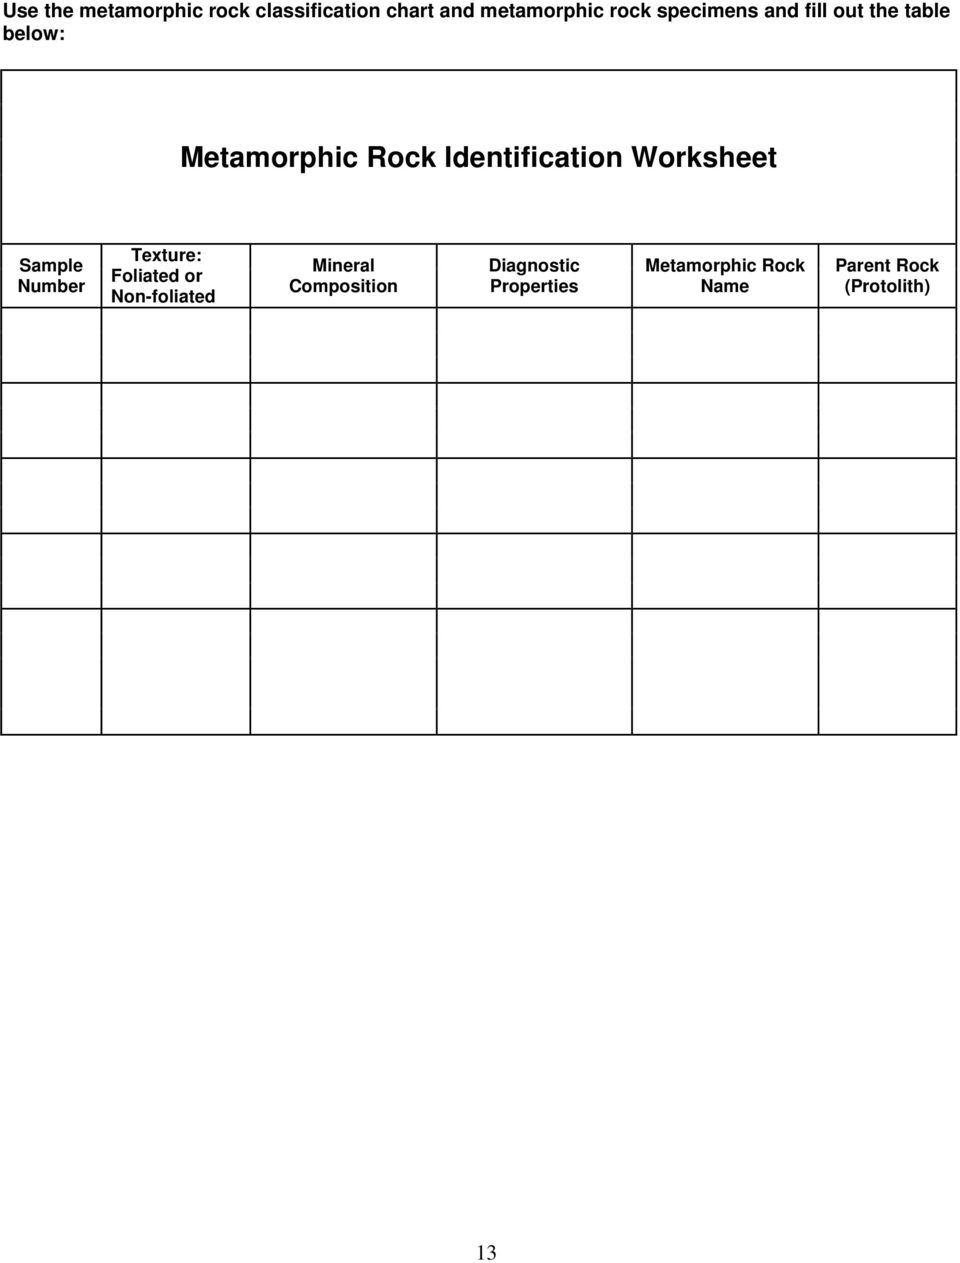 Worksheet Sample Number Texture: Foliated or Non-foliated Mineral